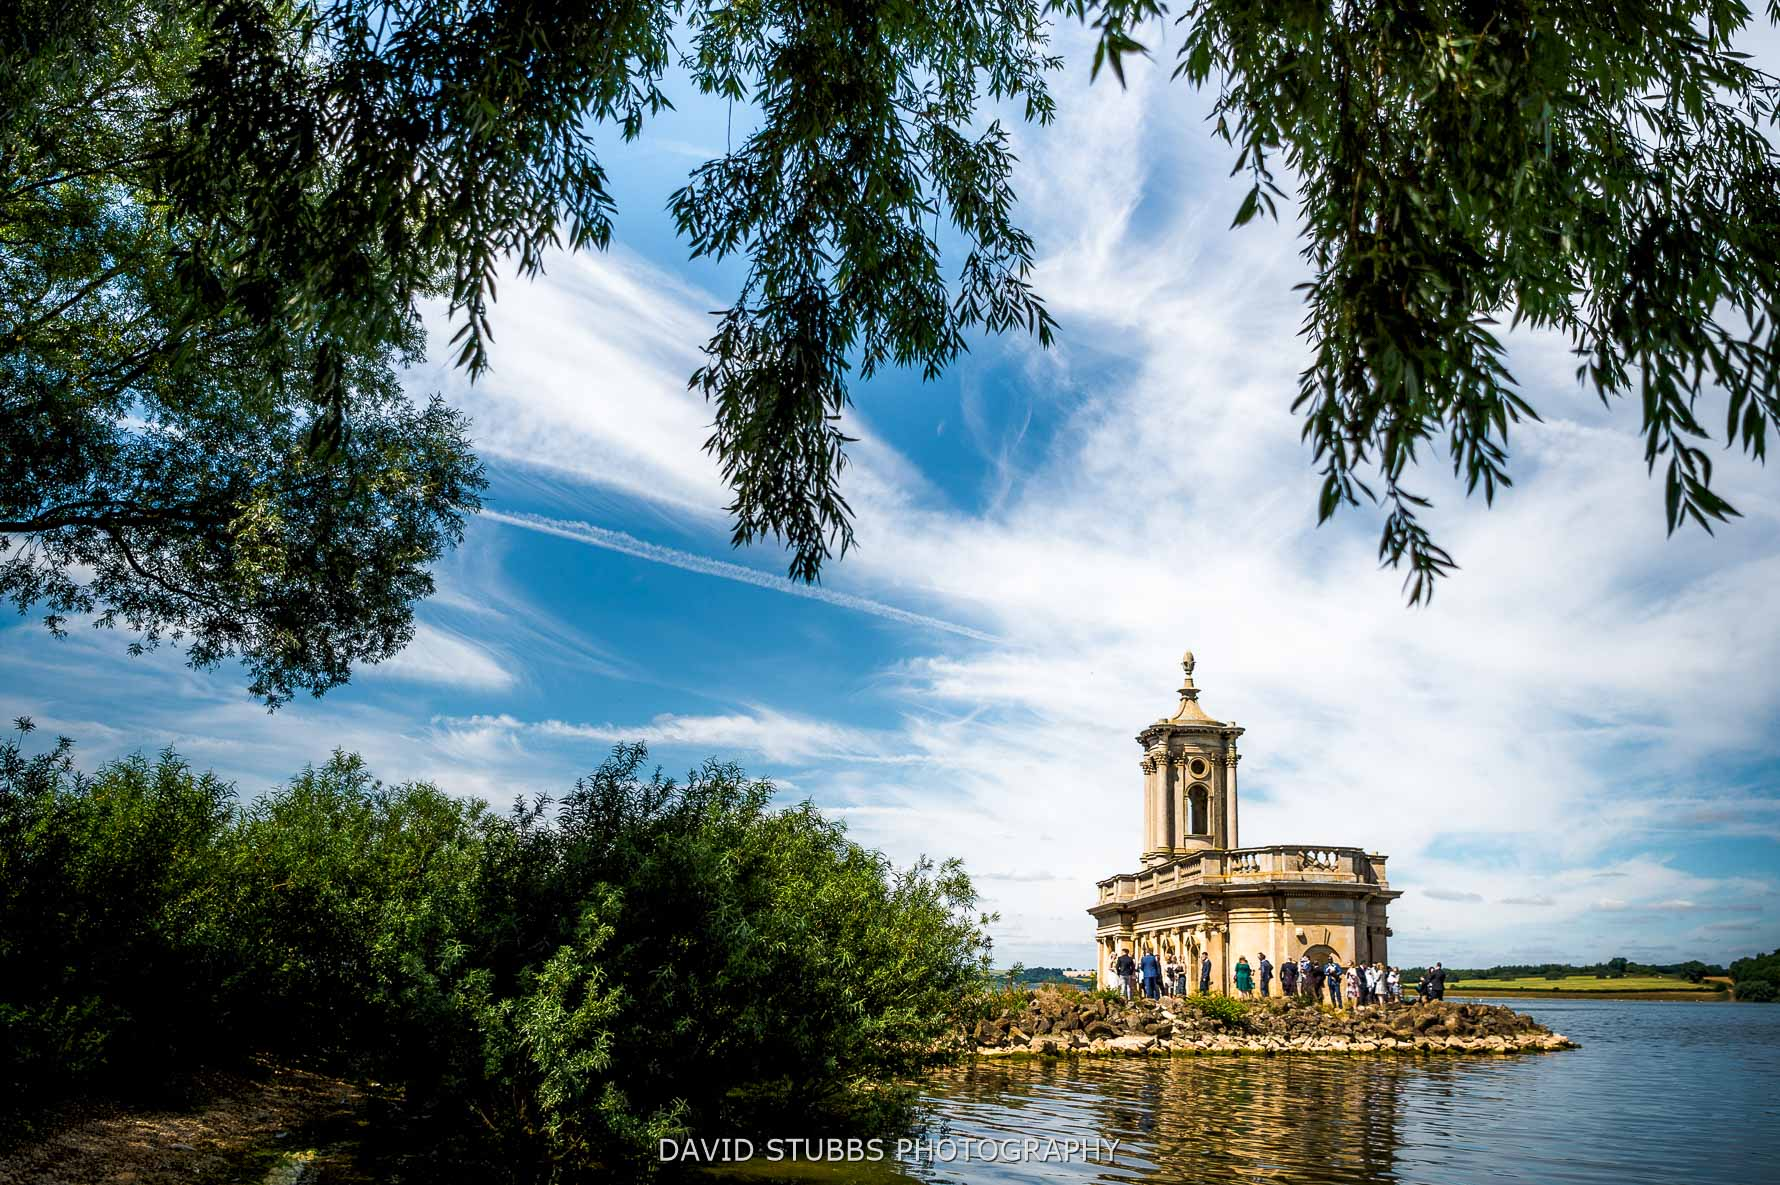 Normanton church for a wedding